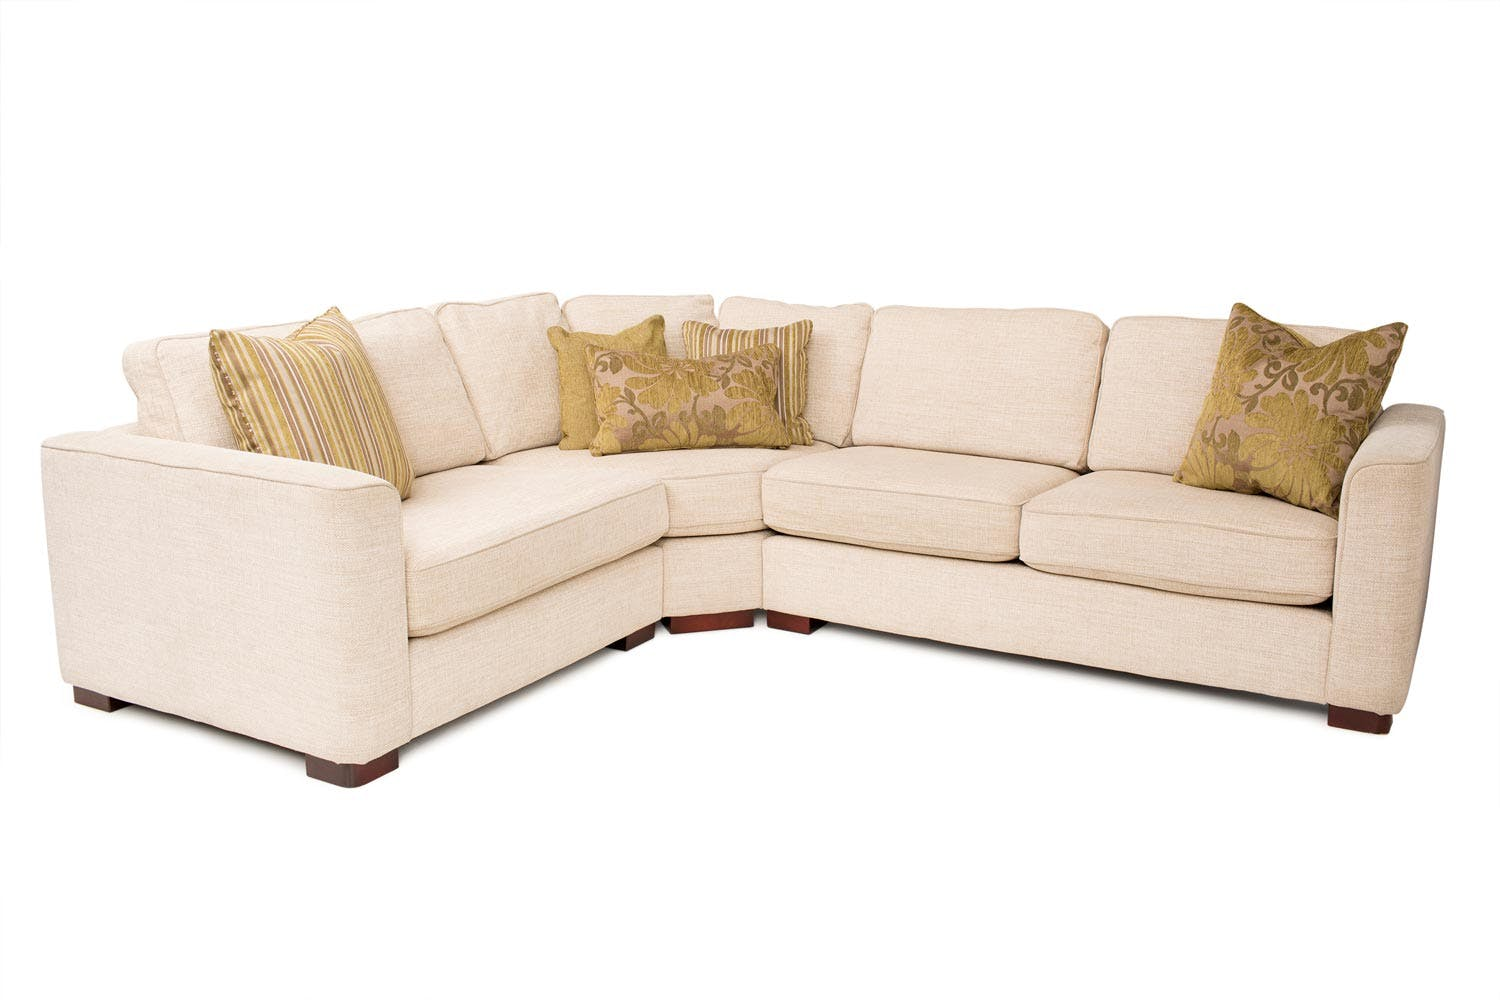 Sofas cork ireland for Phoebe corner sofa